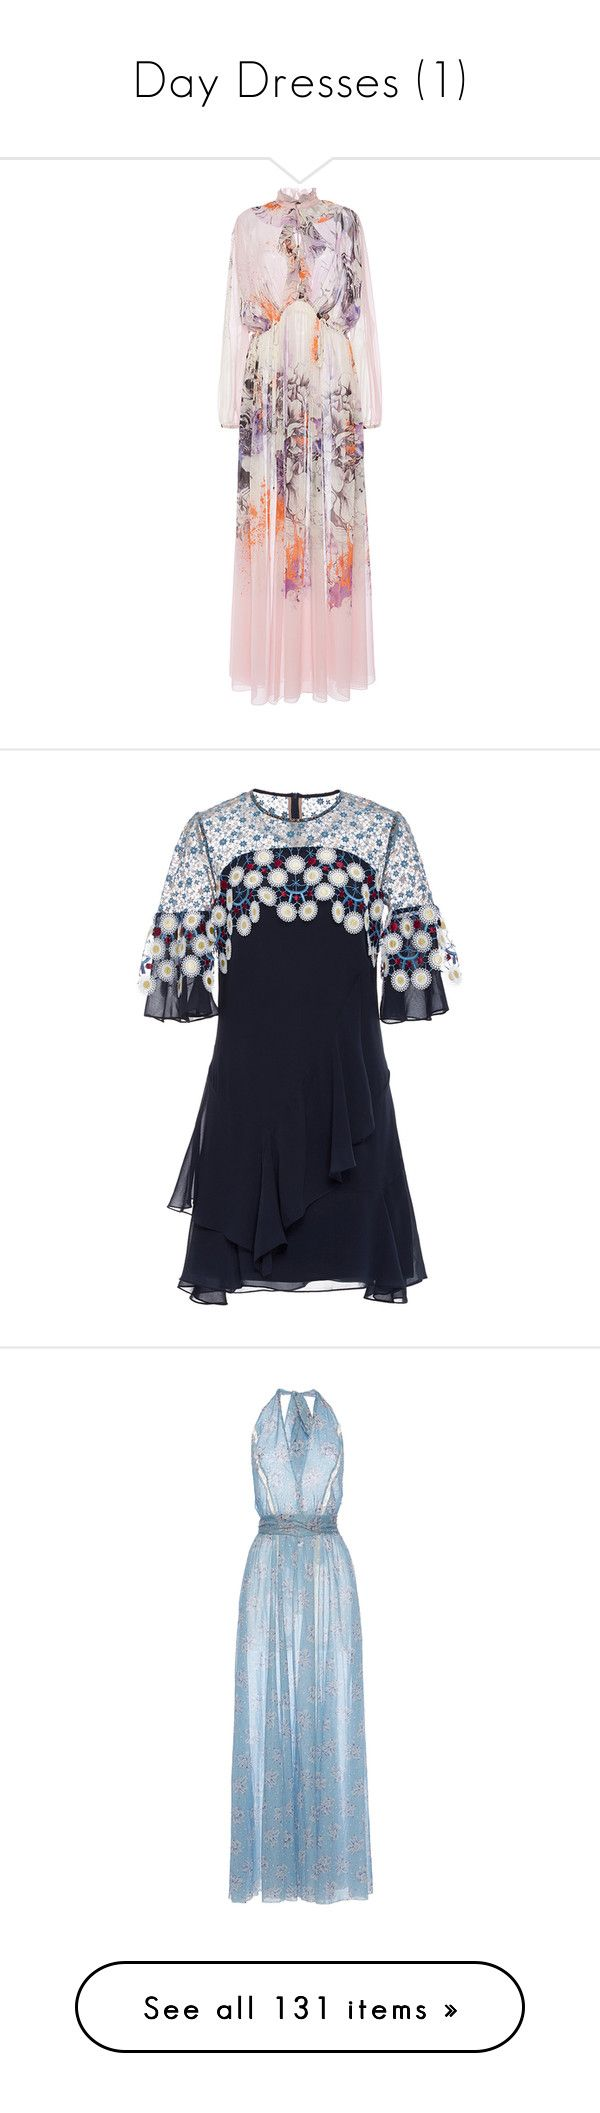 """""""Day Dresses (1)"""" by venus-in-fleurs on Polyvore featuring dresses, floral, floral print maxi skirt, long sleeve floral dress, pink floral maxi skirt, long-sleeve floral dresses, long floral skirts, navy, silk embroidered dress e silk mini dress"""